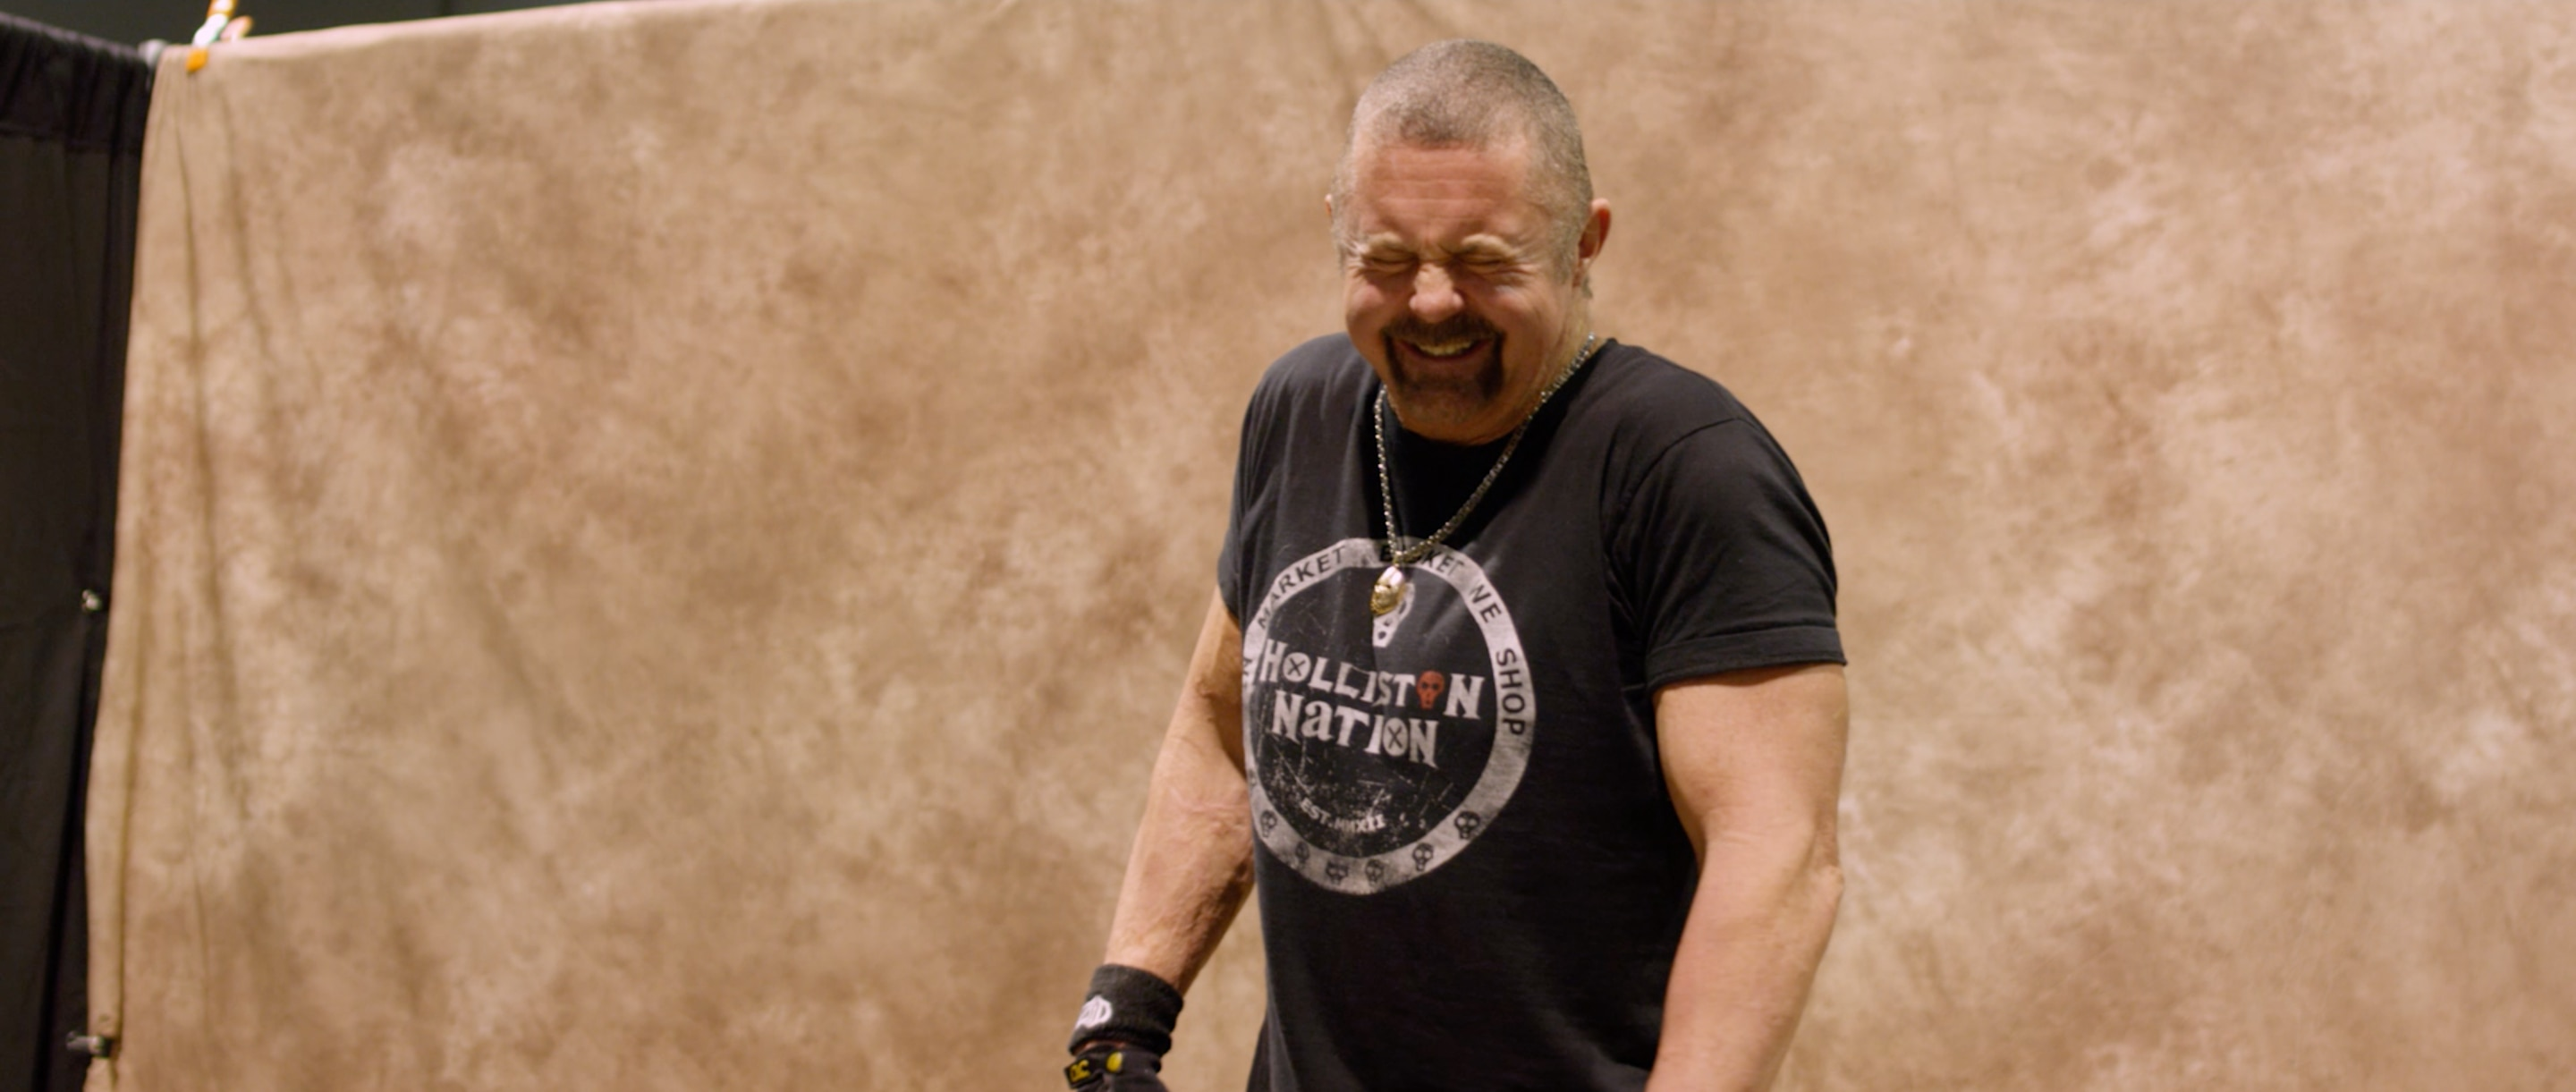 3KaneHodder Laughing - To Hell and Back: The Kane Hodder Story Gets a Historic Poster